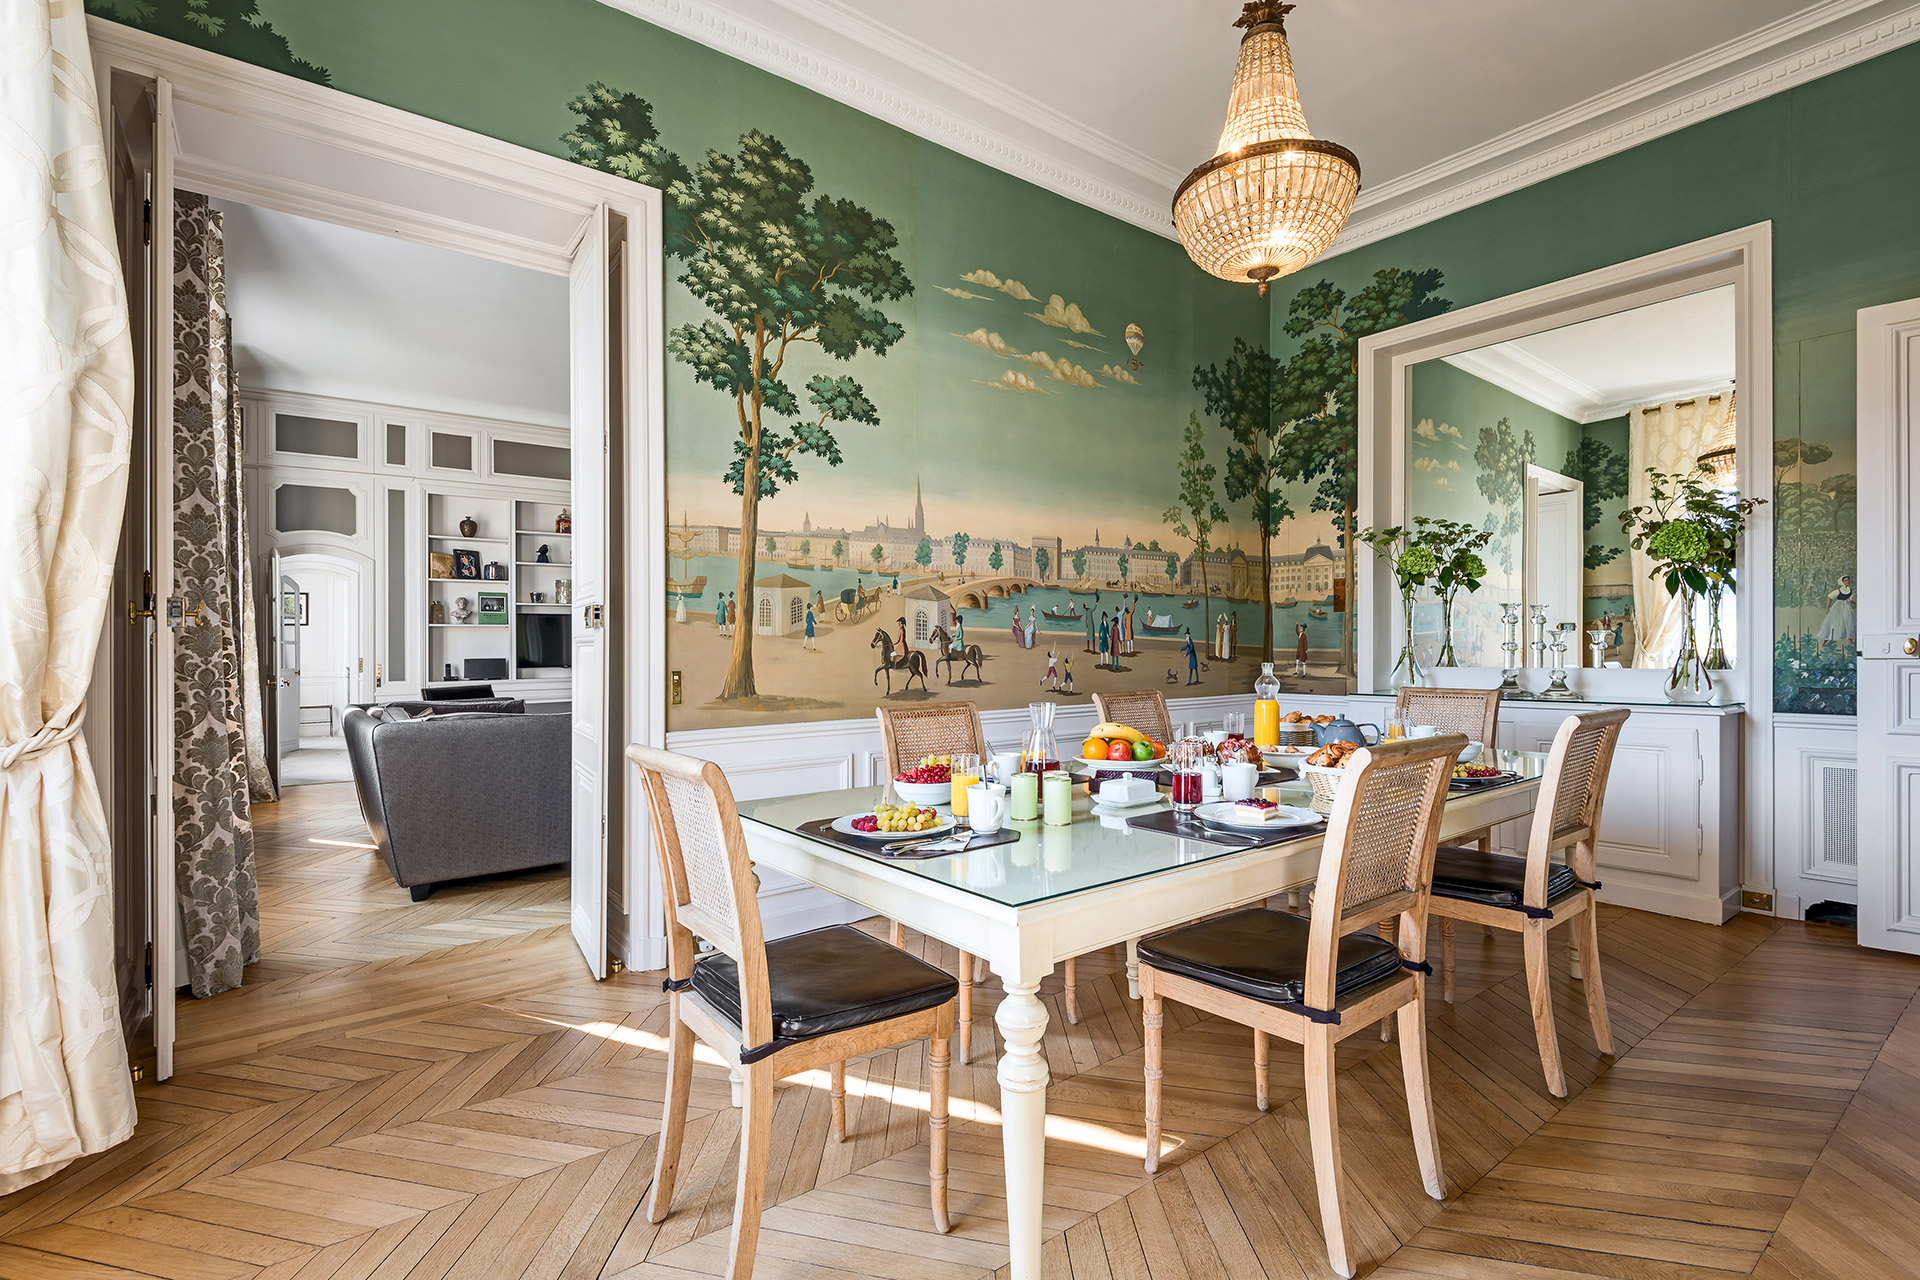 Plenty of space to host a dinner party in the Chopine vacation rental offered by Paris Perfect